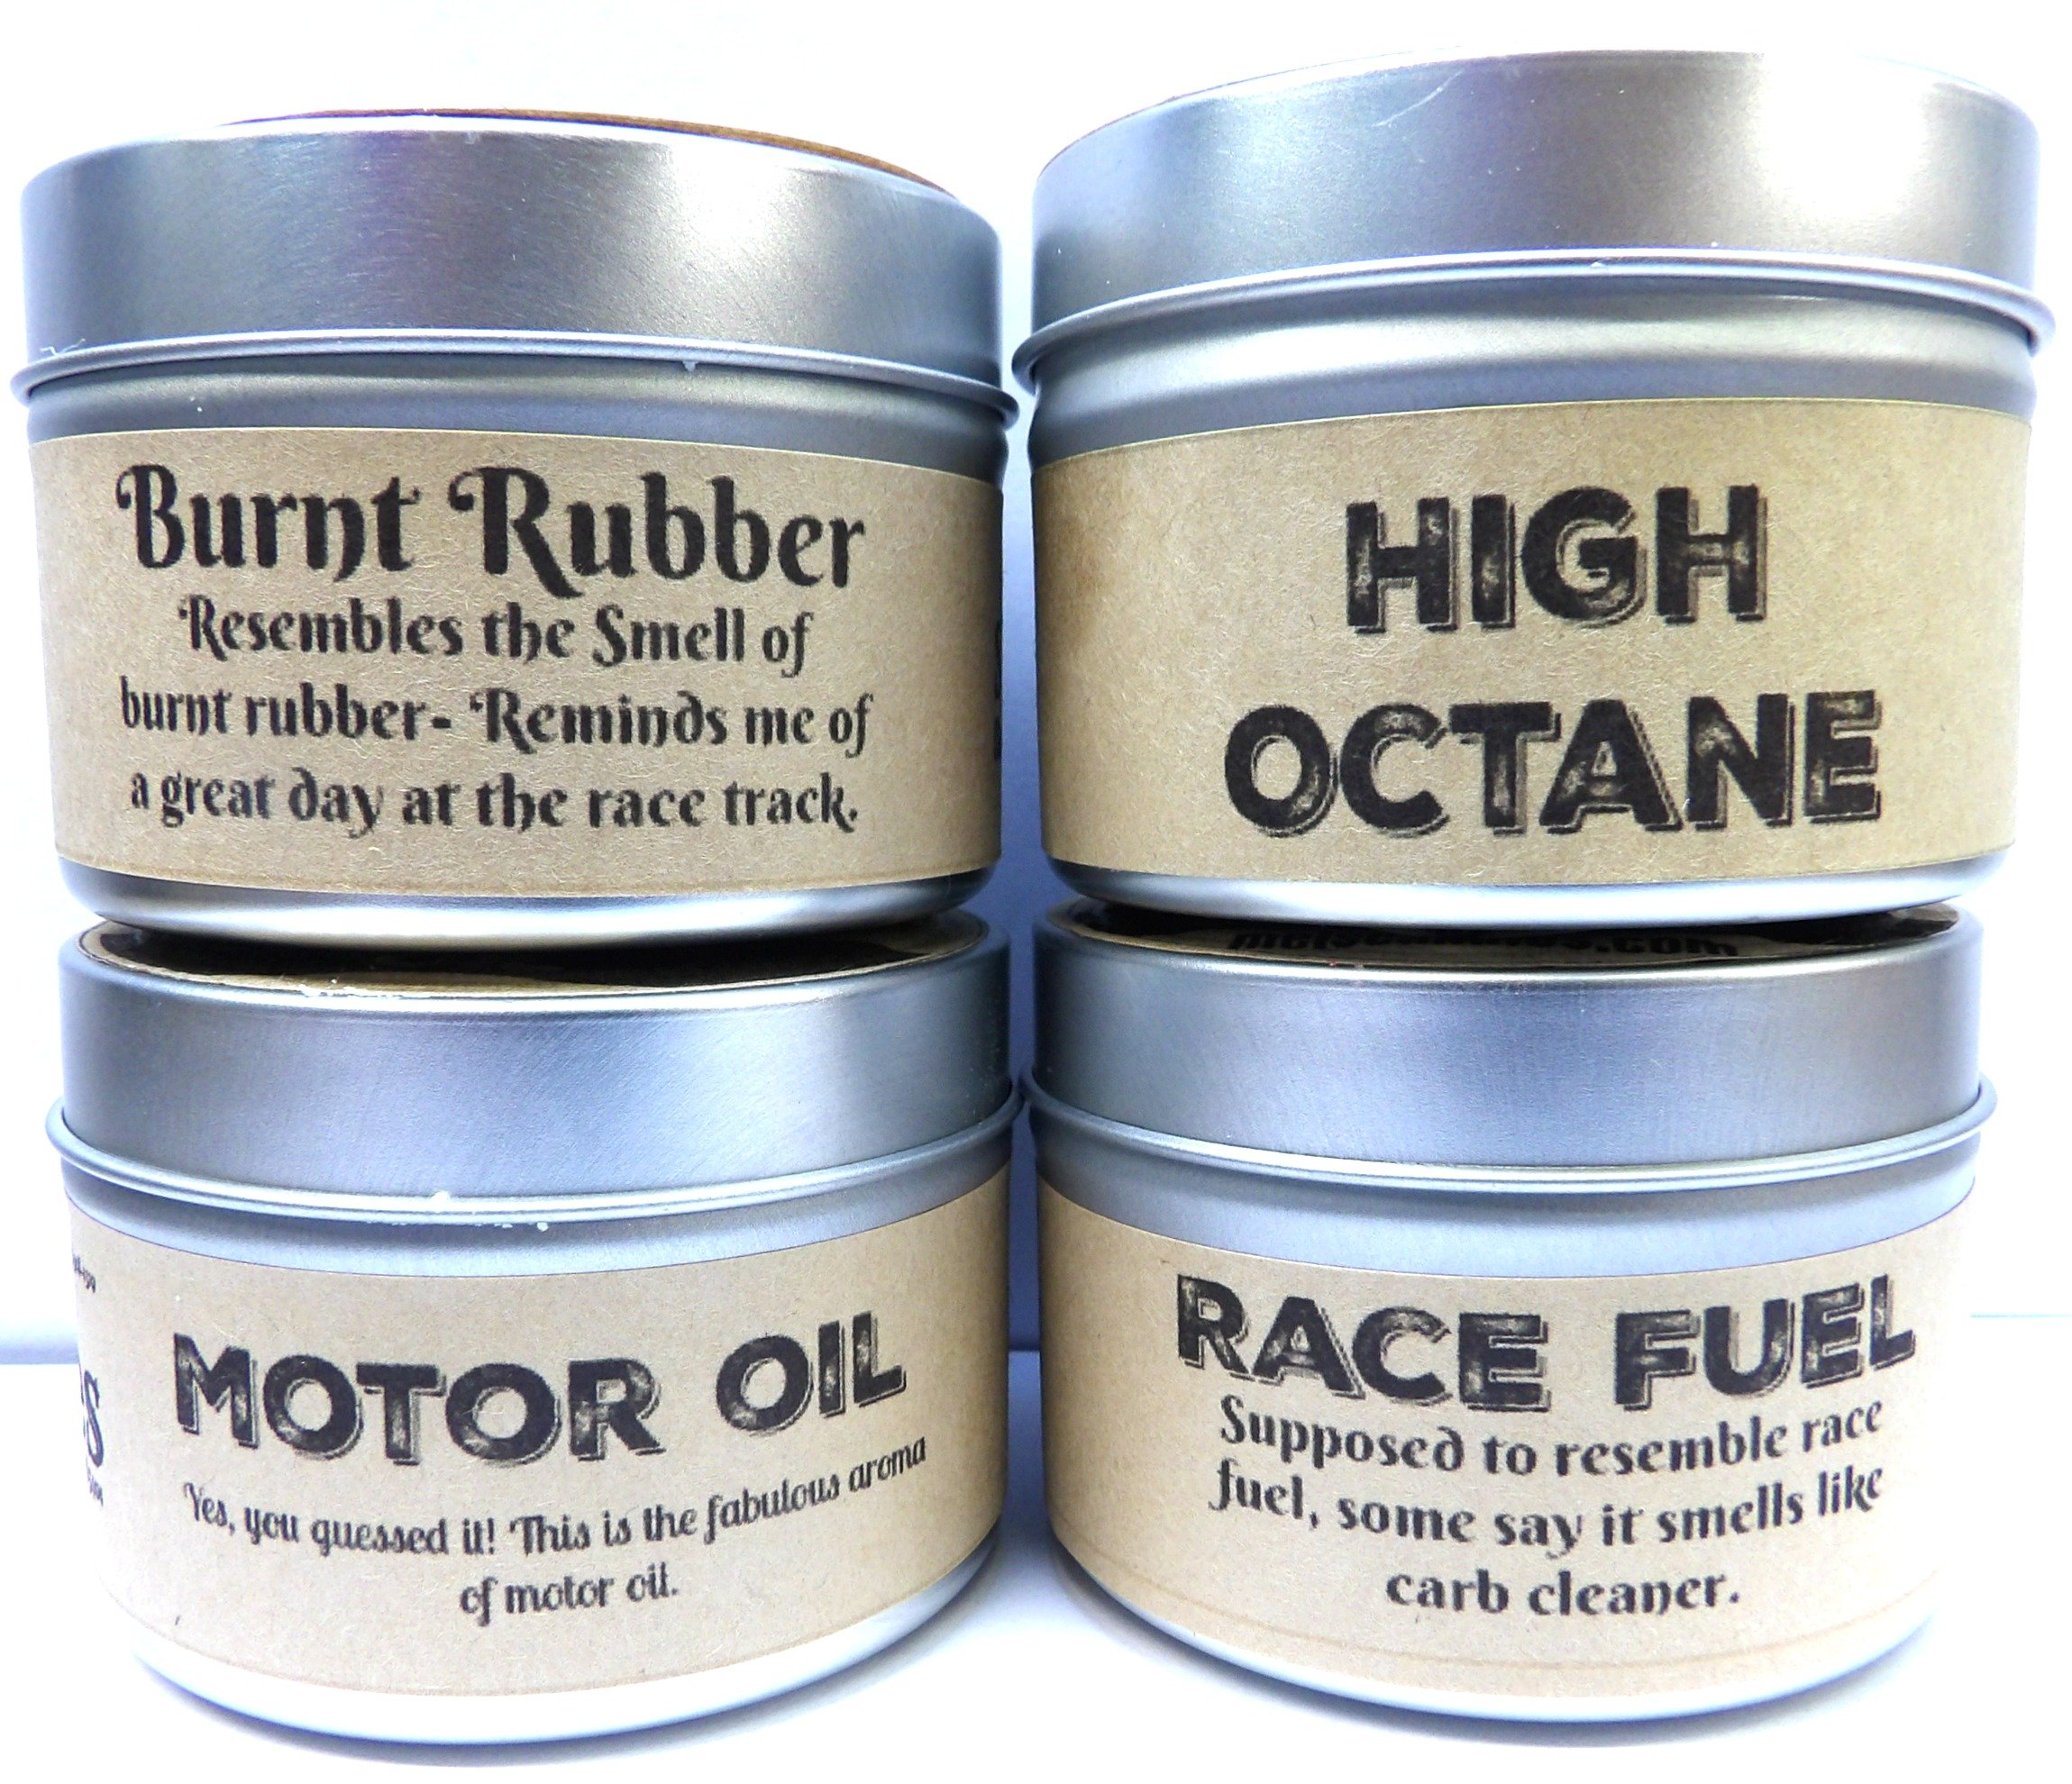 Combo Set of 4 - High Octane, Race Fuel, Motor Oil & Burnt Rubber 4 Oz All Natural Soy Candle Tins by Mels Candles & More (Image #2)